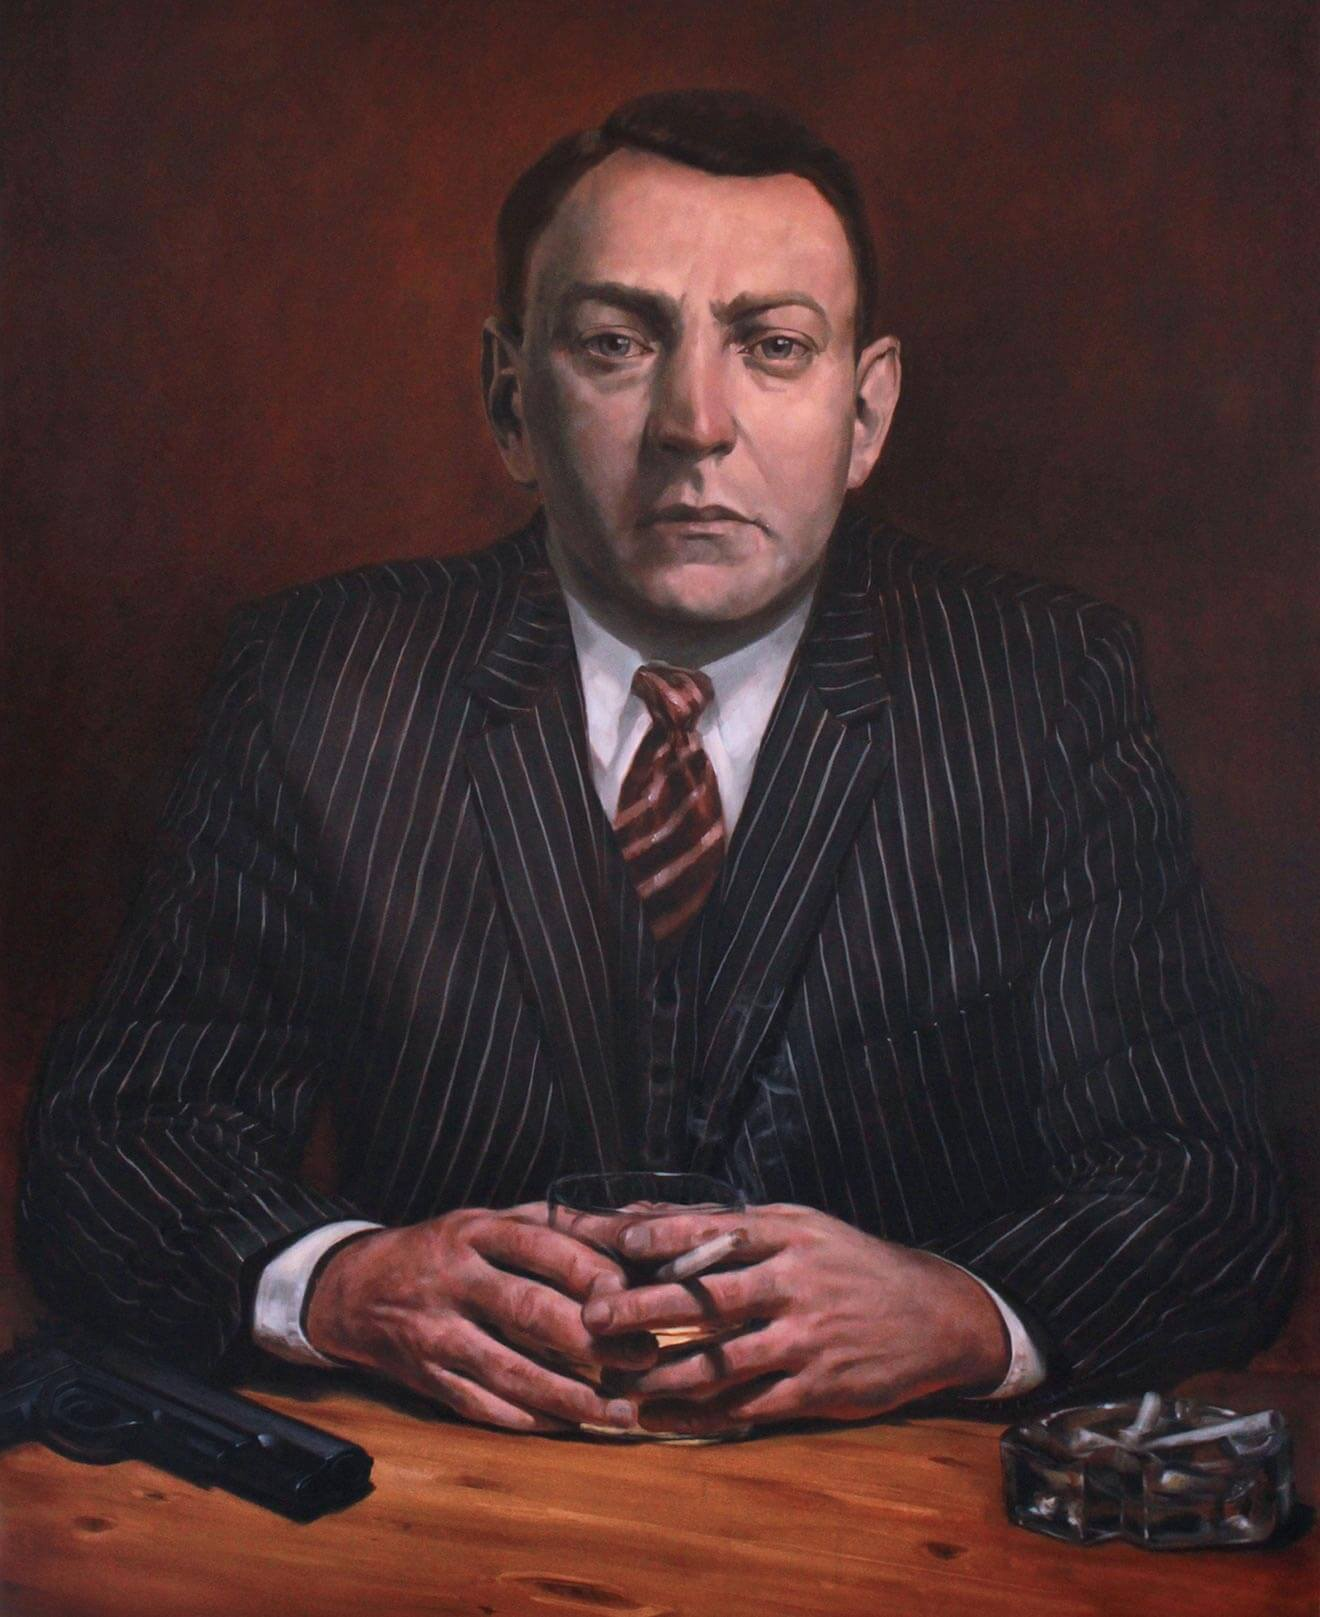 Dutch Schultz Portrait, oil painting, suit with gun, smoking cigarette